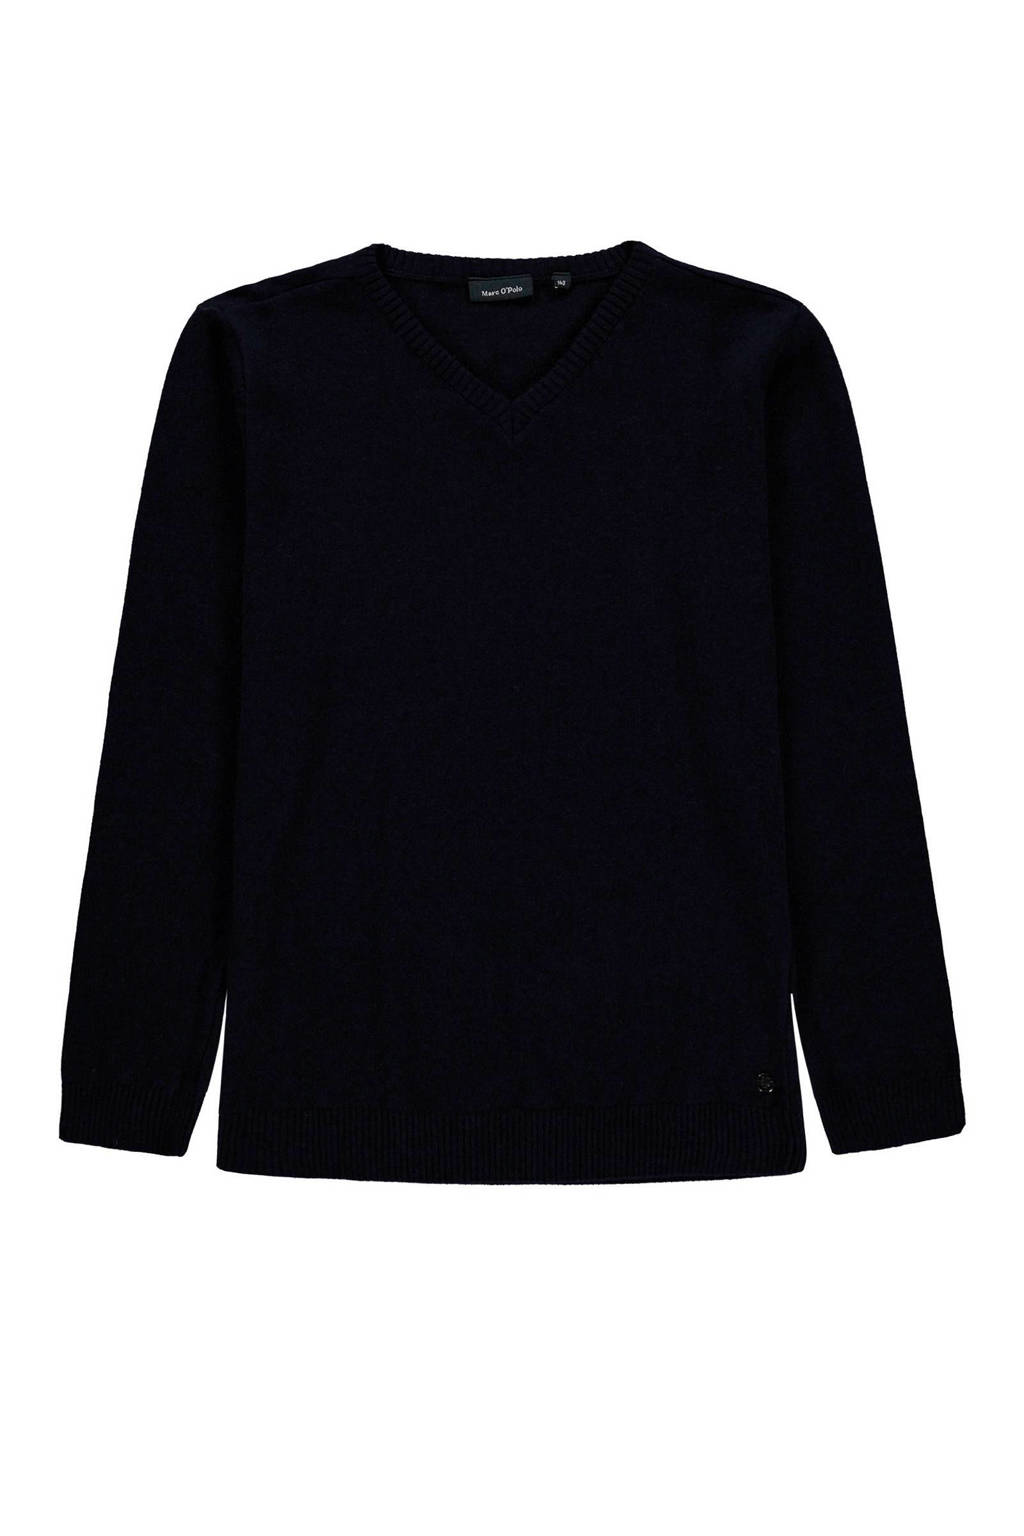 Marc O'Polo sweater met wol donkerblauw, Donkerblauw